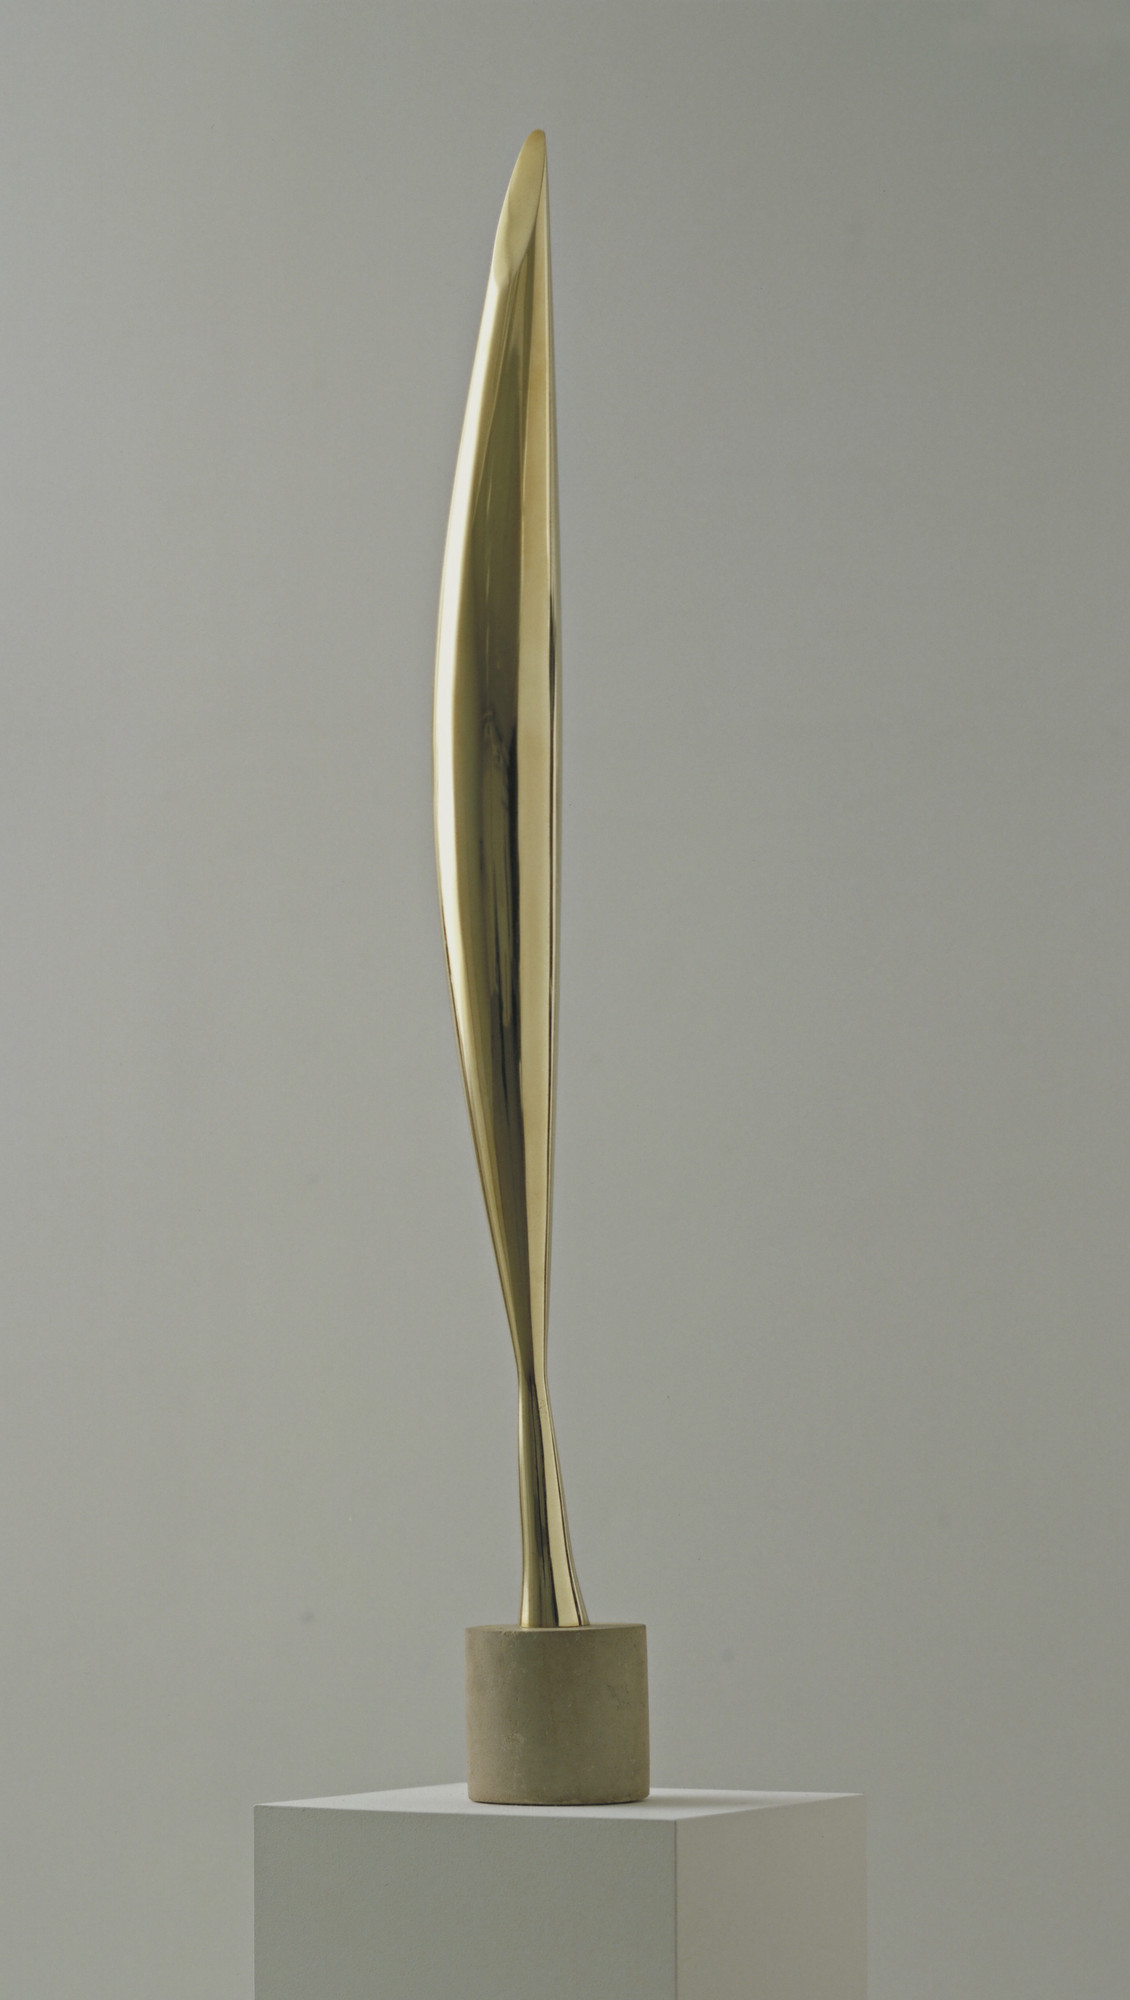 Constantin Brancusi (French, born Romania. 1876–1957). Bird in Space. 1928. Bronze, 54 × 8 1/2 × 6 1/2″ (137.2 × 21.6 × 16.5 cm). Given anonymously. © 2017 Artists Rights Society (ARS), New York/ADAGP, Paris